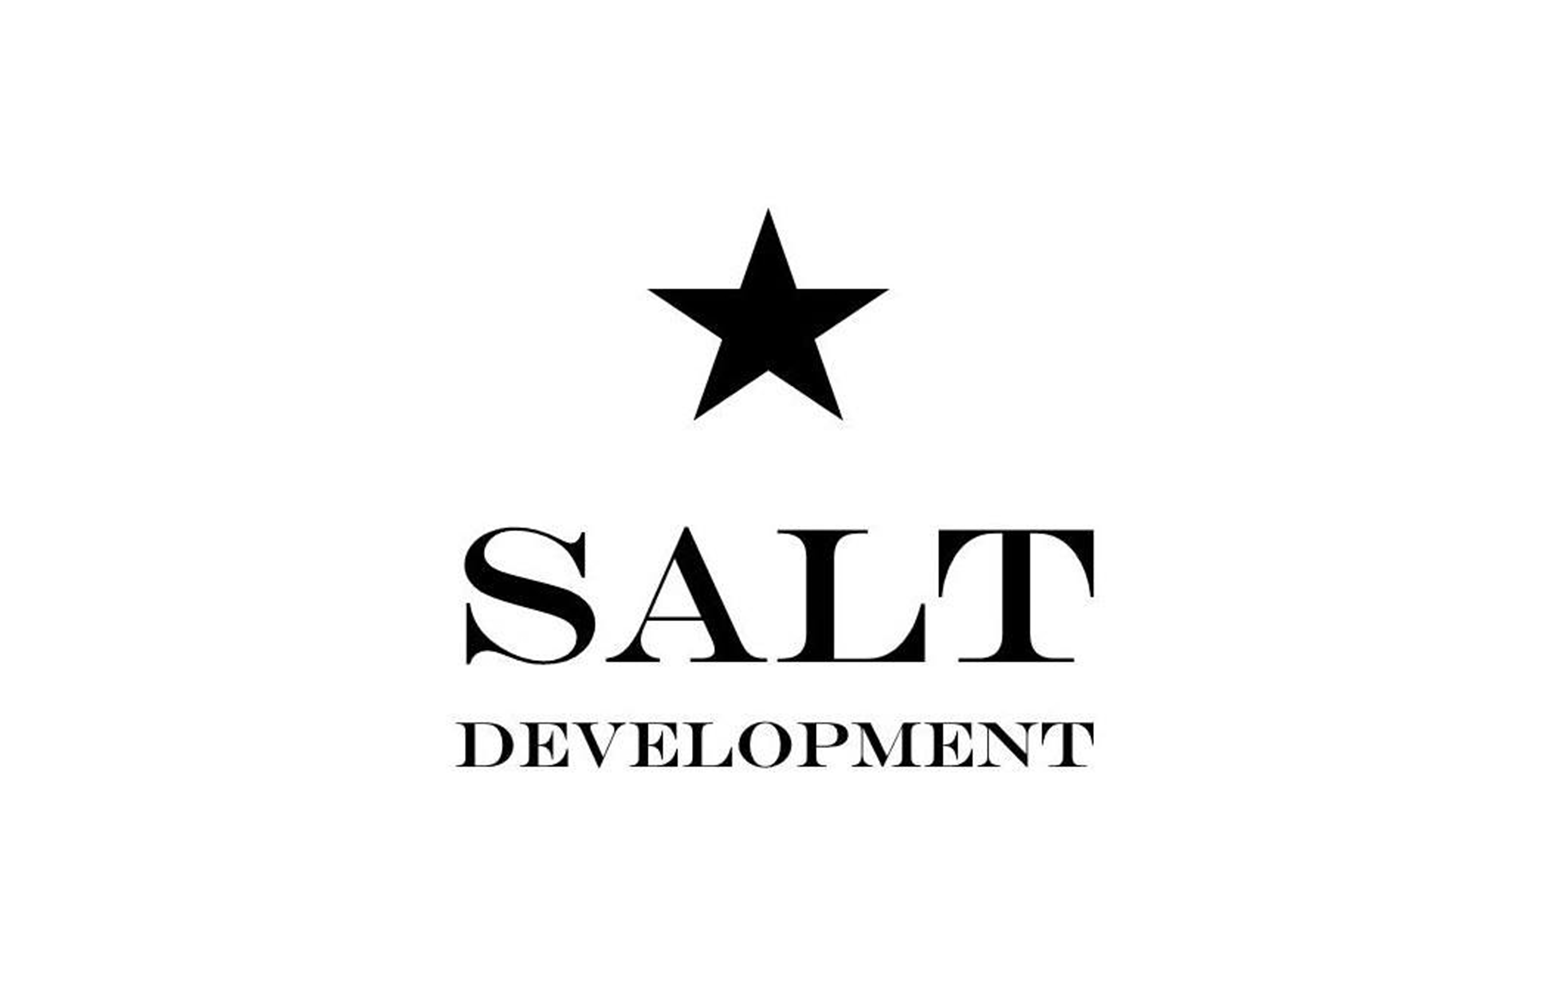 SALT Development